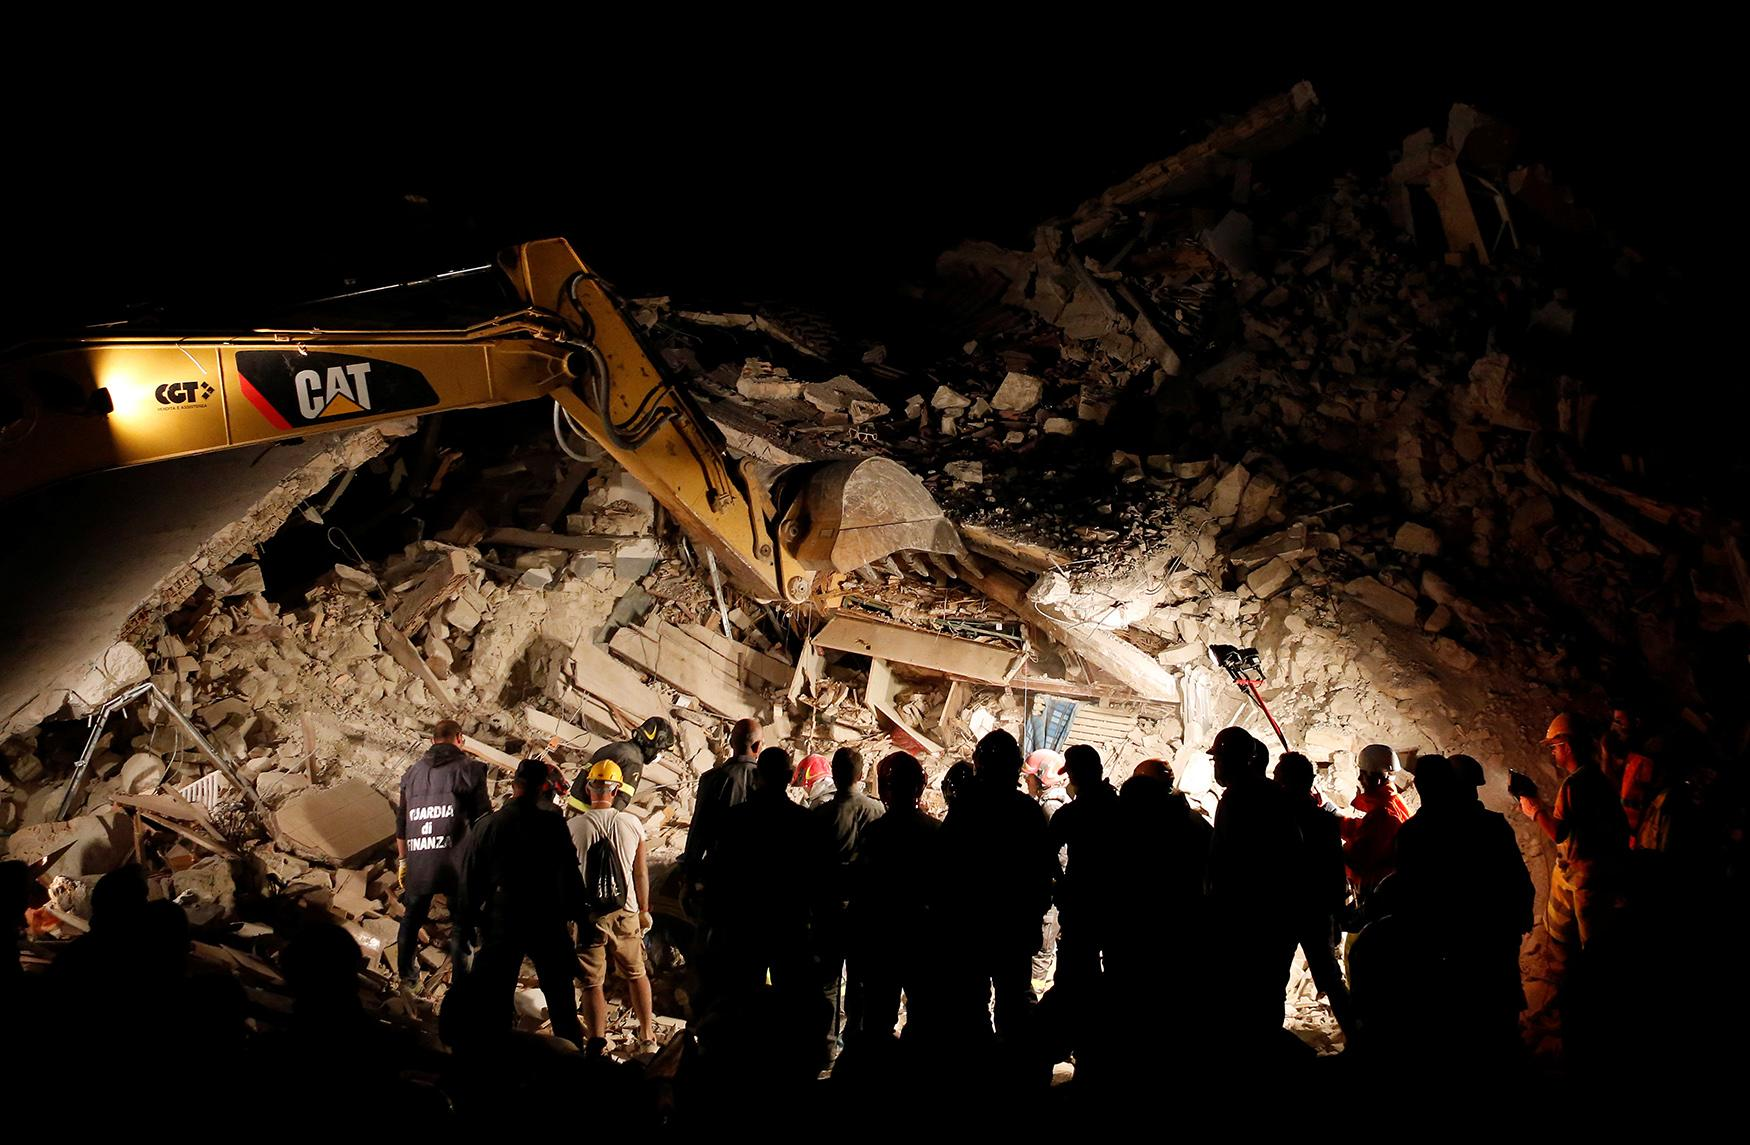 <p>Rescuers work in the night at a collapsed house following an earthquake in Pescara del Tronto, central Italy, August 24, 2016. (Photo: Remo Casilli/Reuters) </p>